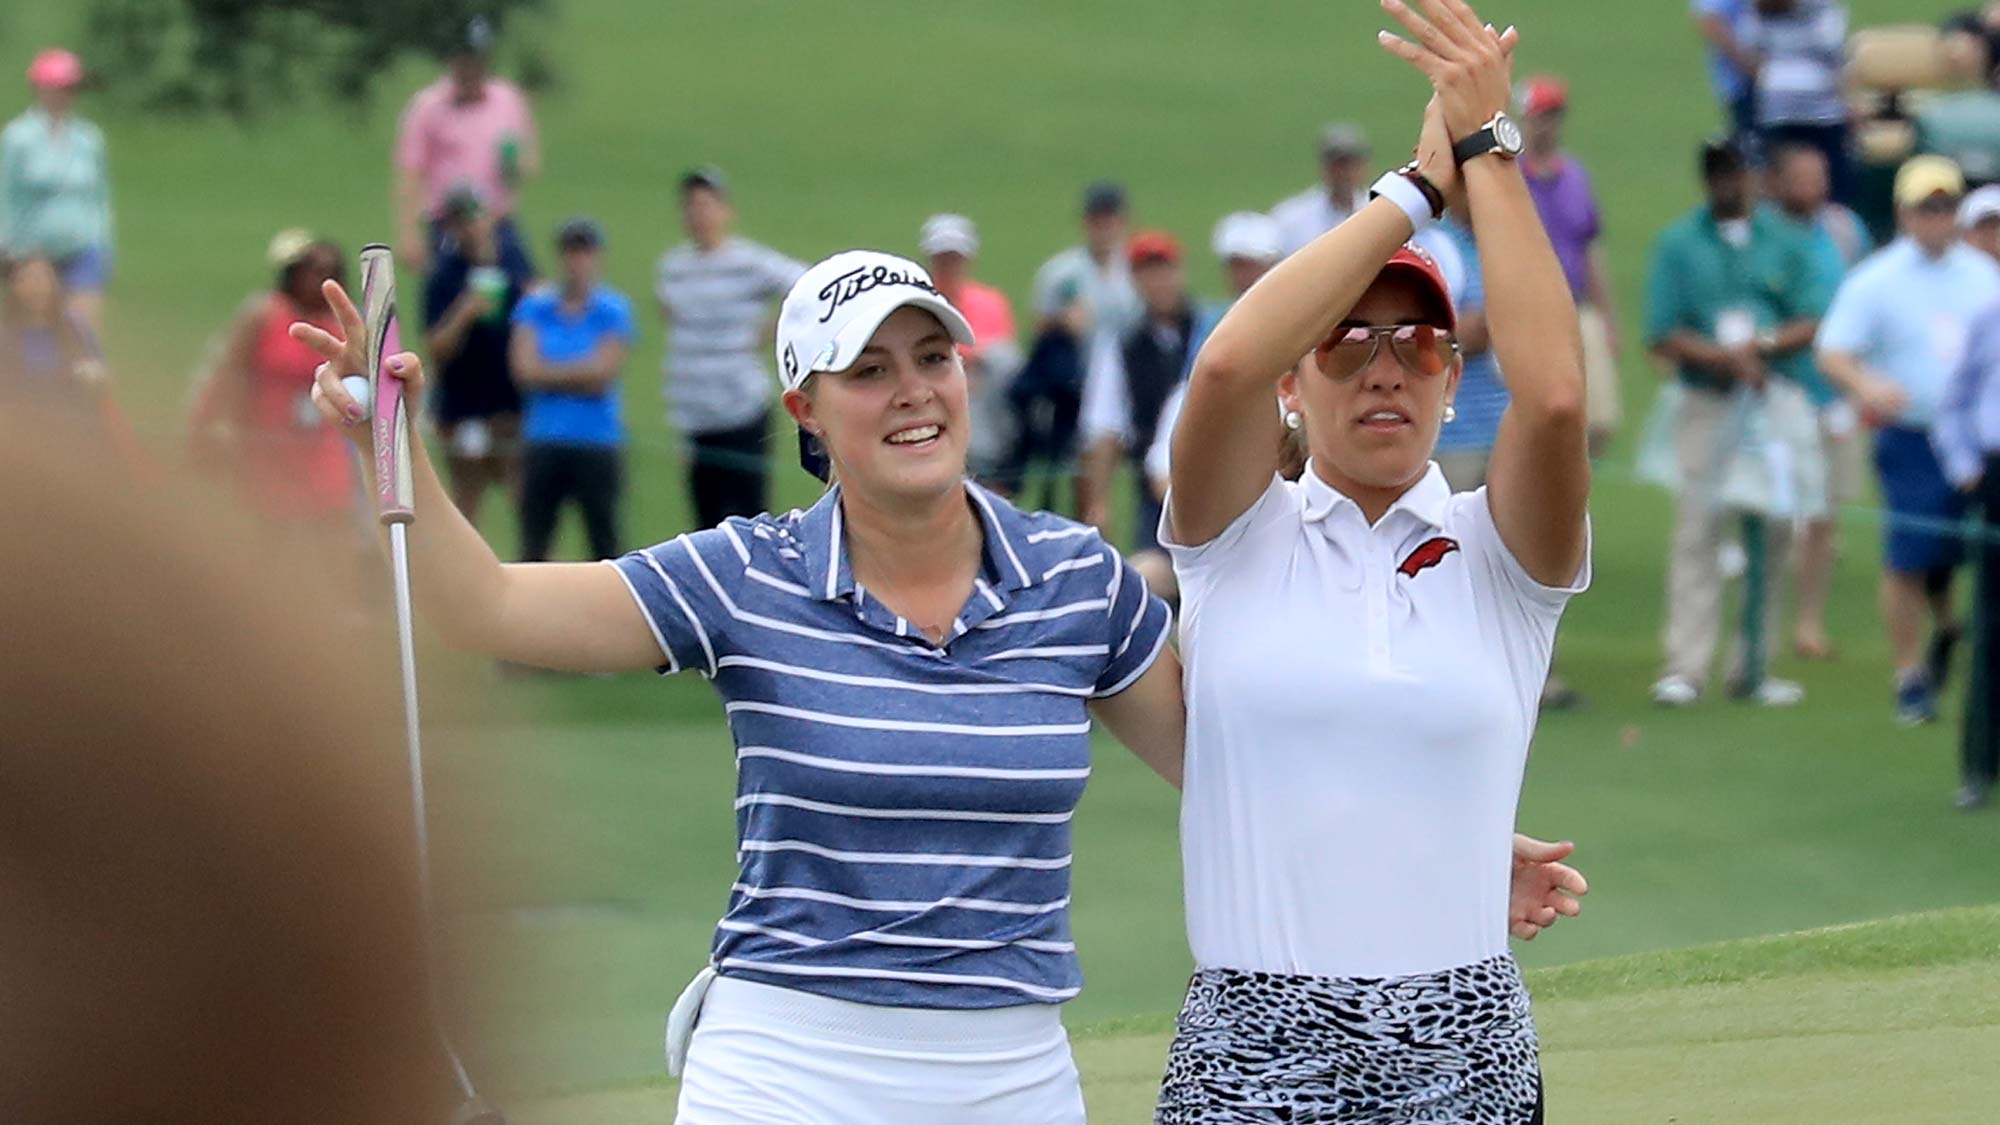 Jennifer Kupcho of the United States (L) is congratulated by her playing partner Maria Fassi of Mexico after holing a putt for birdie on the par 4, 18th hole as the patrons applaud during the final round of the inaugural Augusta National Women's Amateur Championship at Augusta National Golf Club